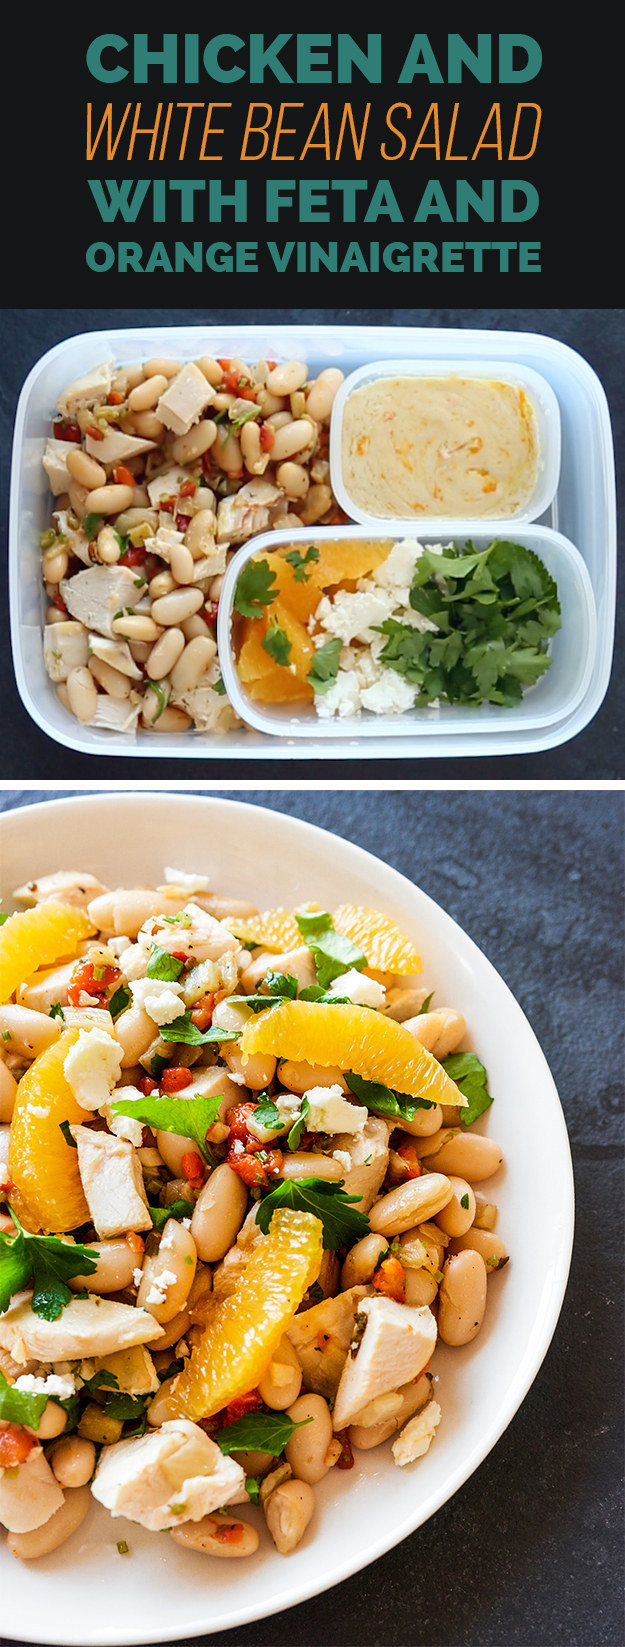 Buzzfeed Healthy Lunches  Here s How To Pack 5 Make Ahead Healthy Lunches